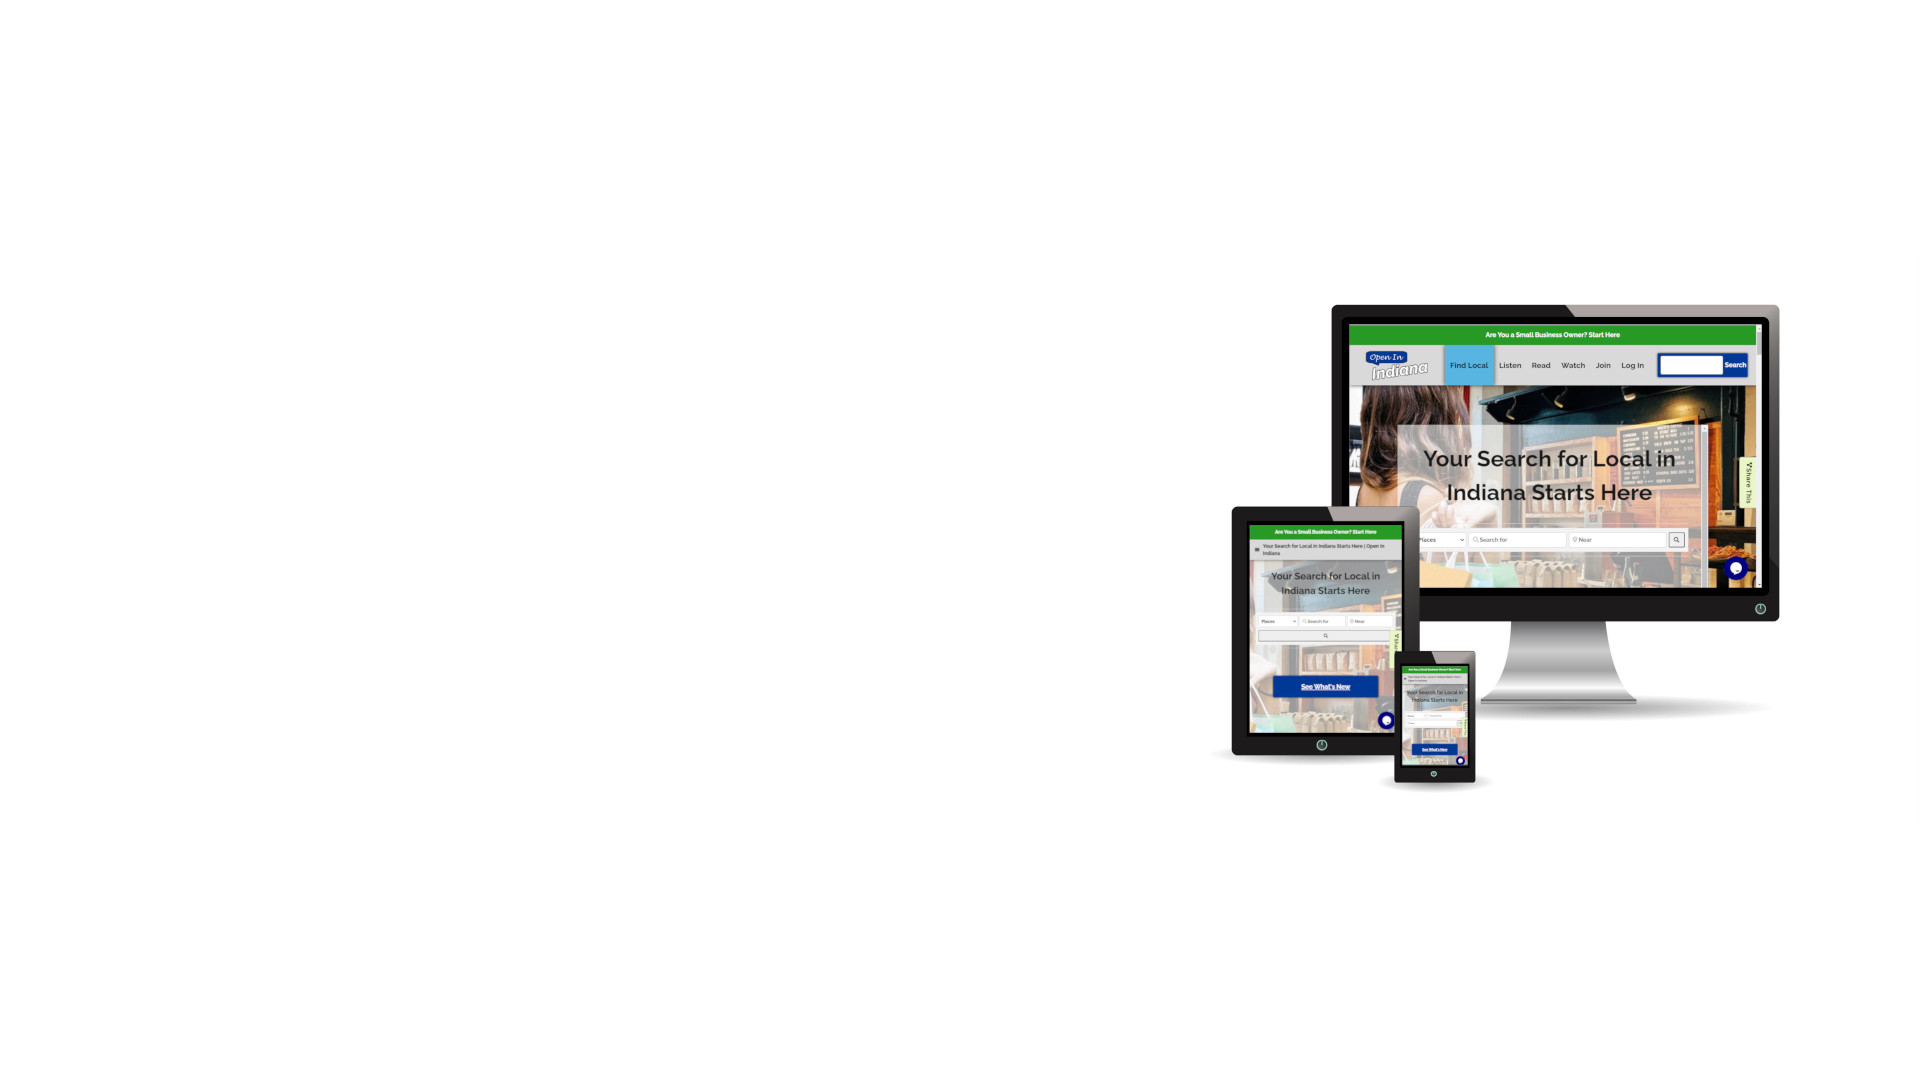 3 screens, a desktop, a tablet, and a phone, with the Open In Indiana website loaded on them.